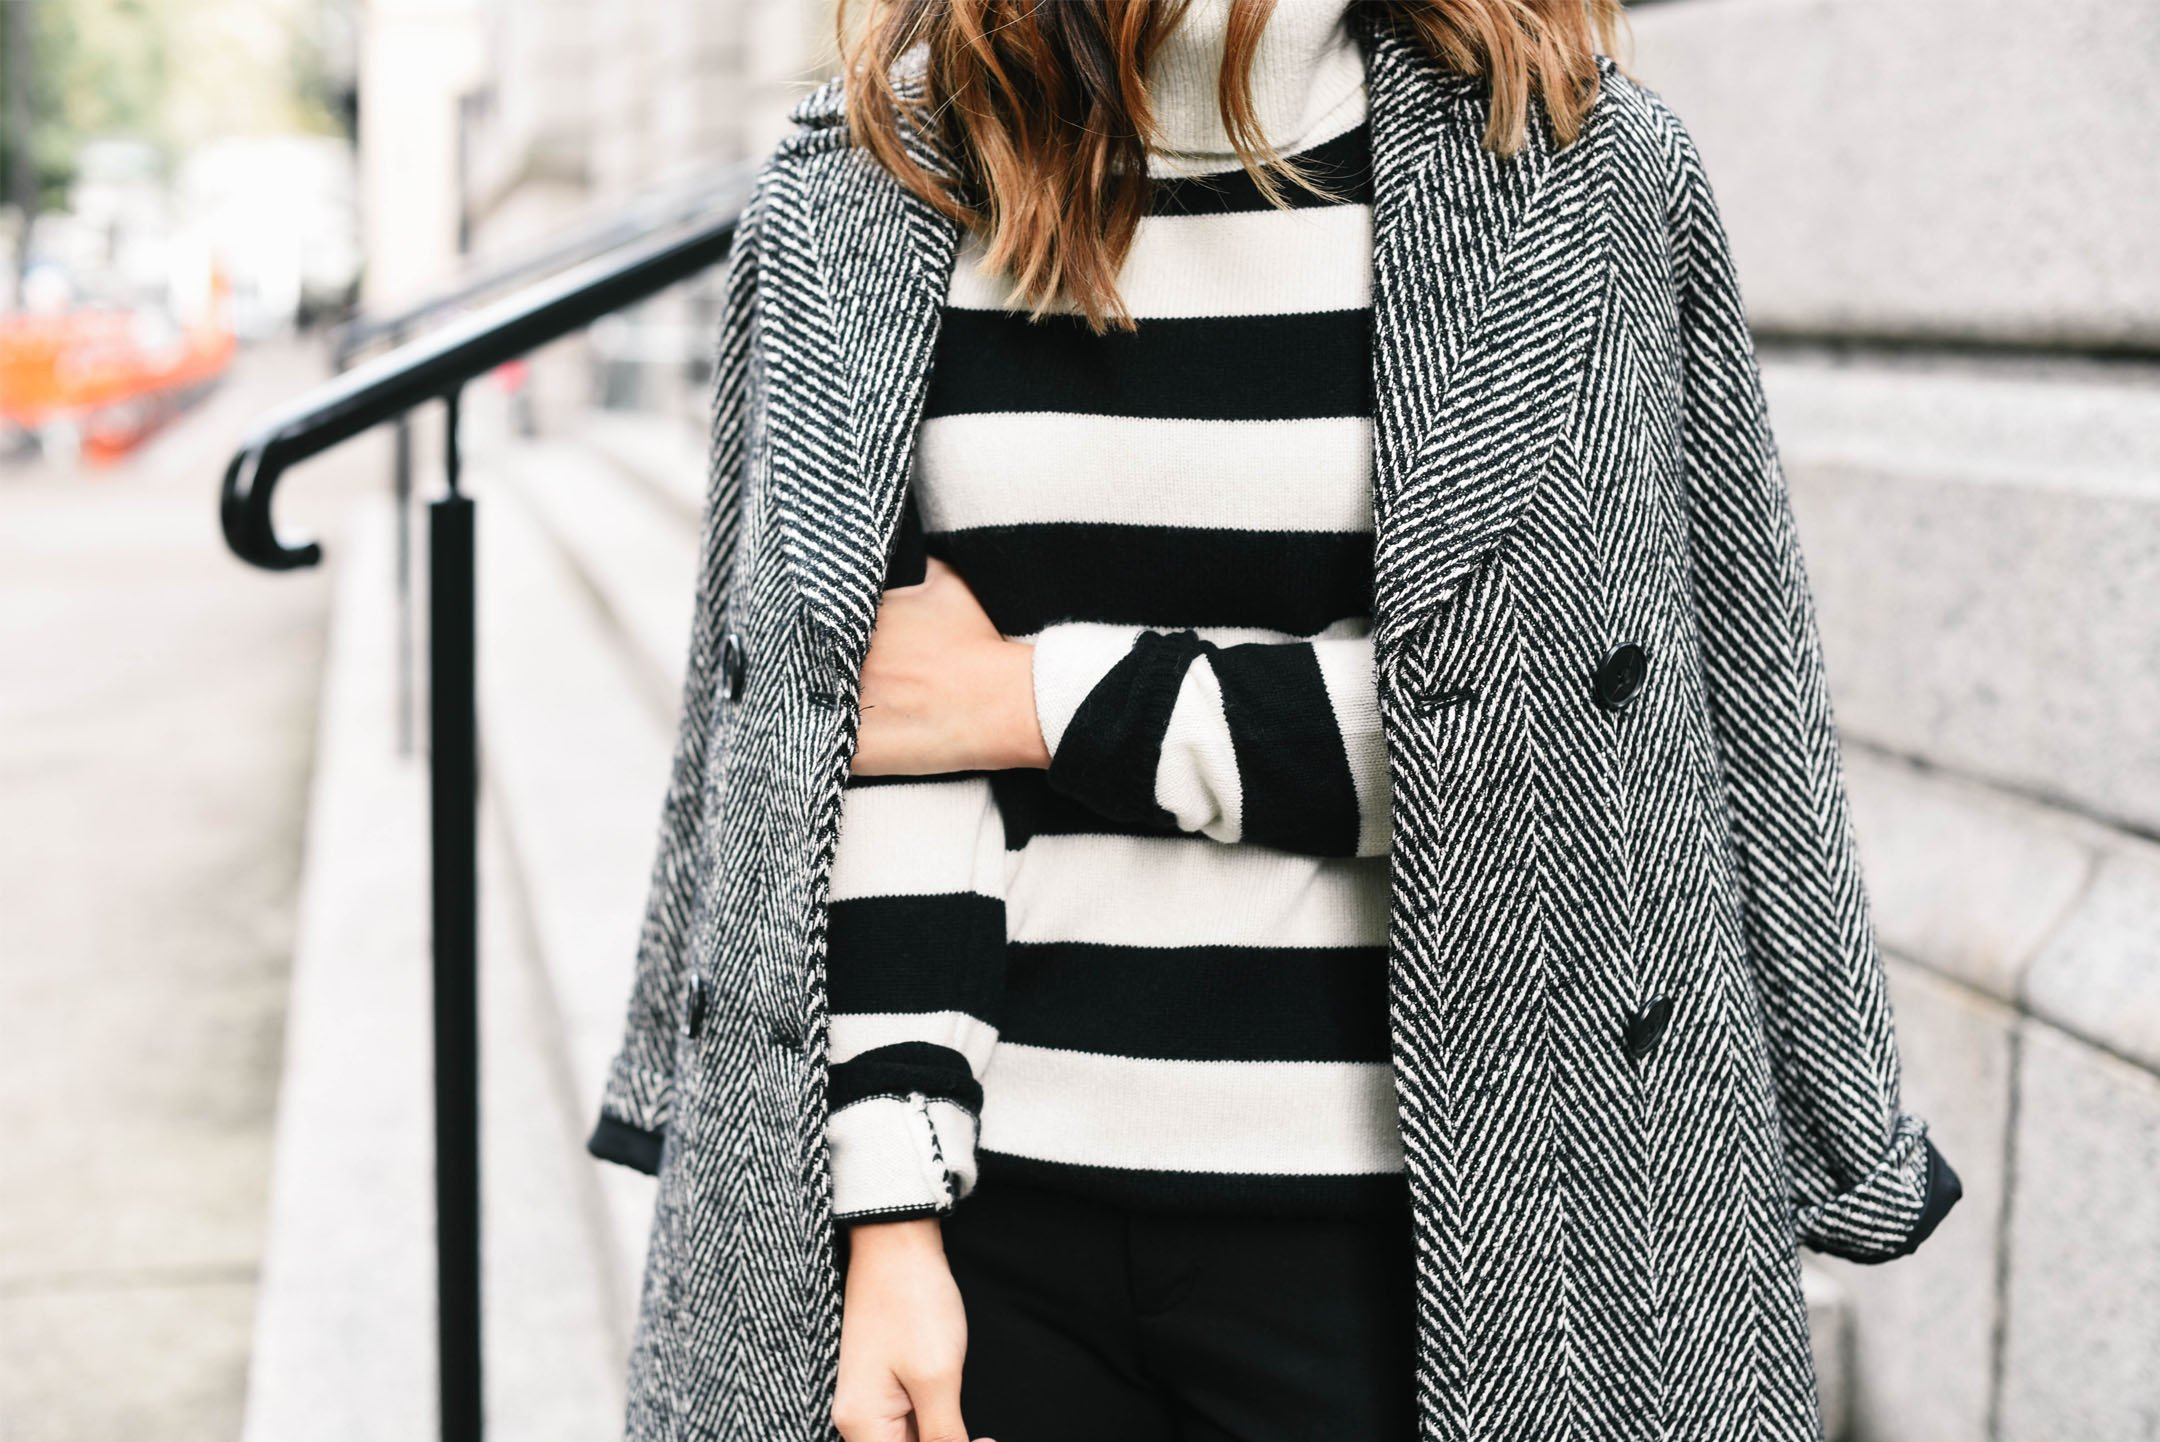 tod-and-duncan-black-and-white-striped-cashmere-turtleneck